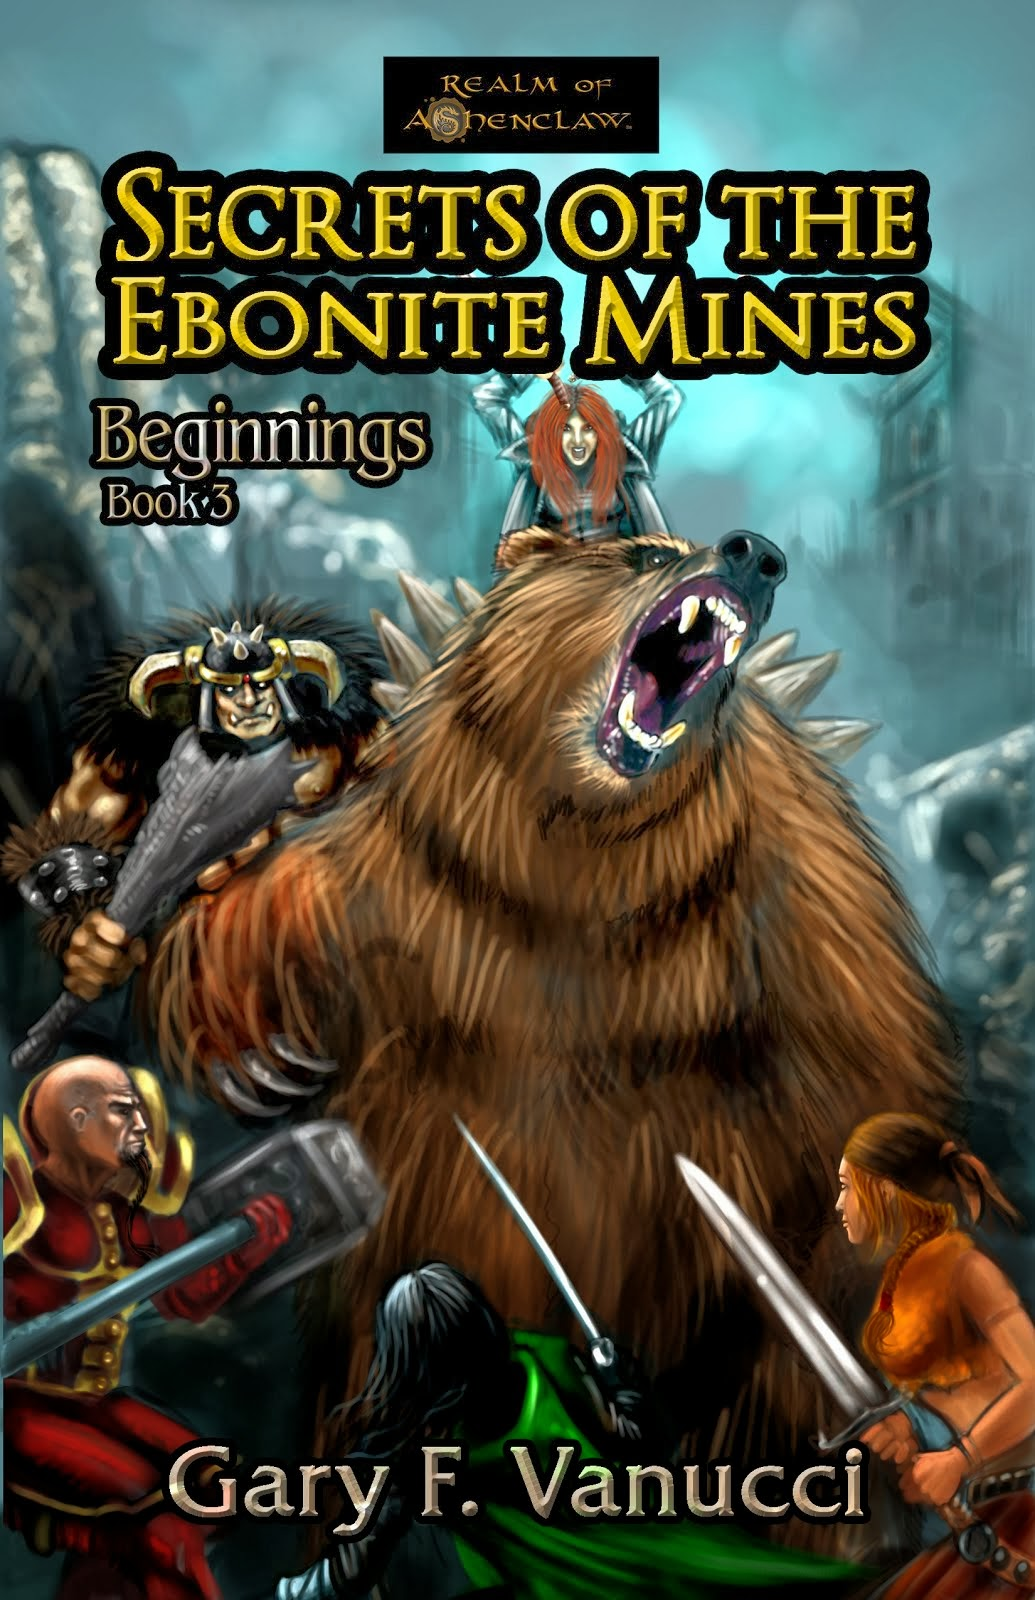 Secrets of the Ebonite Mines